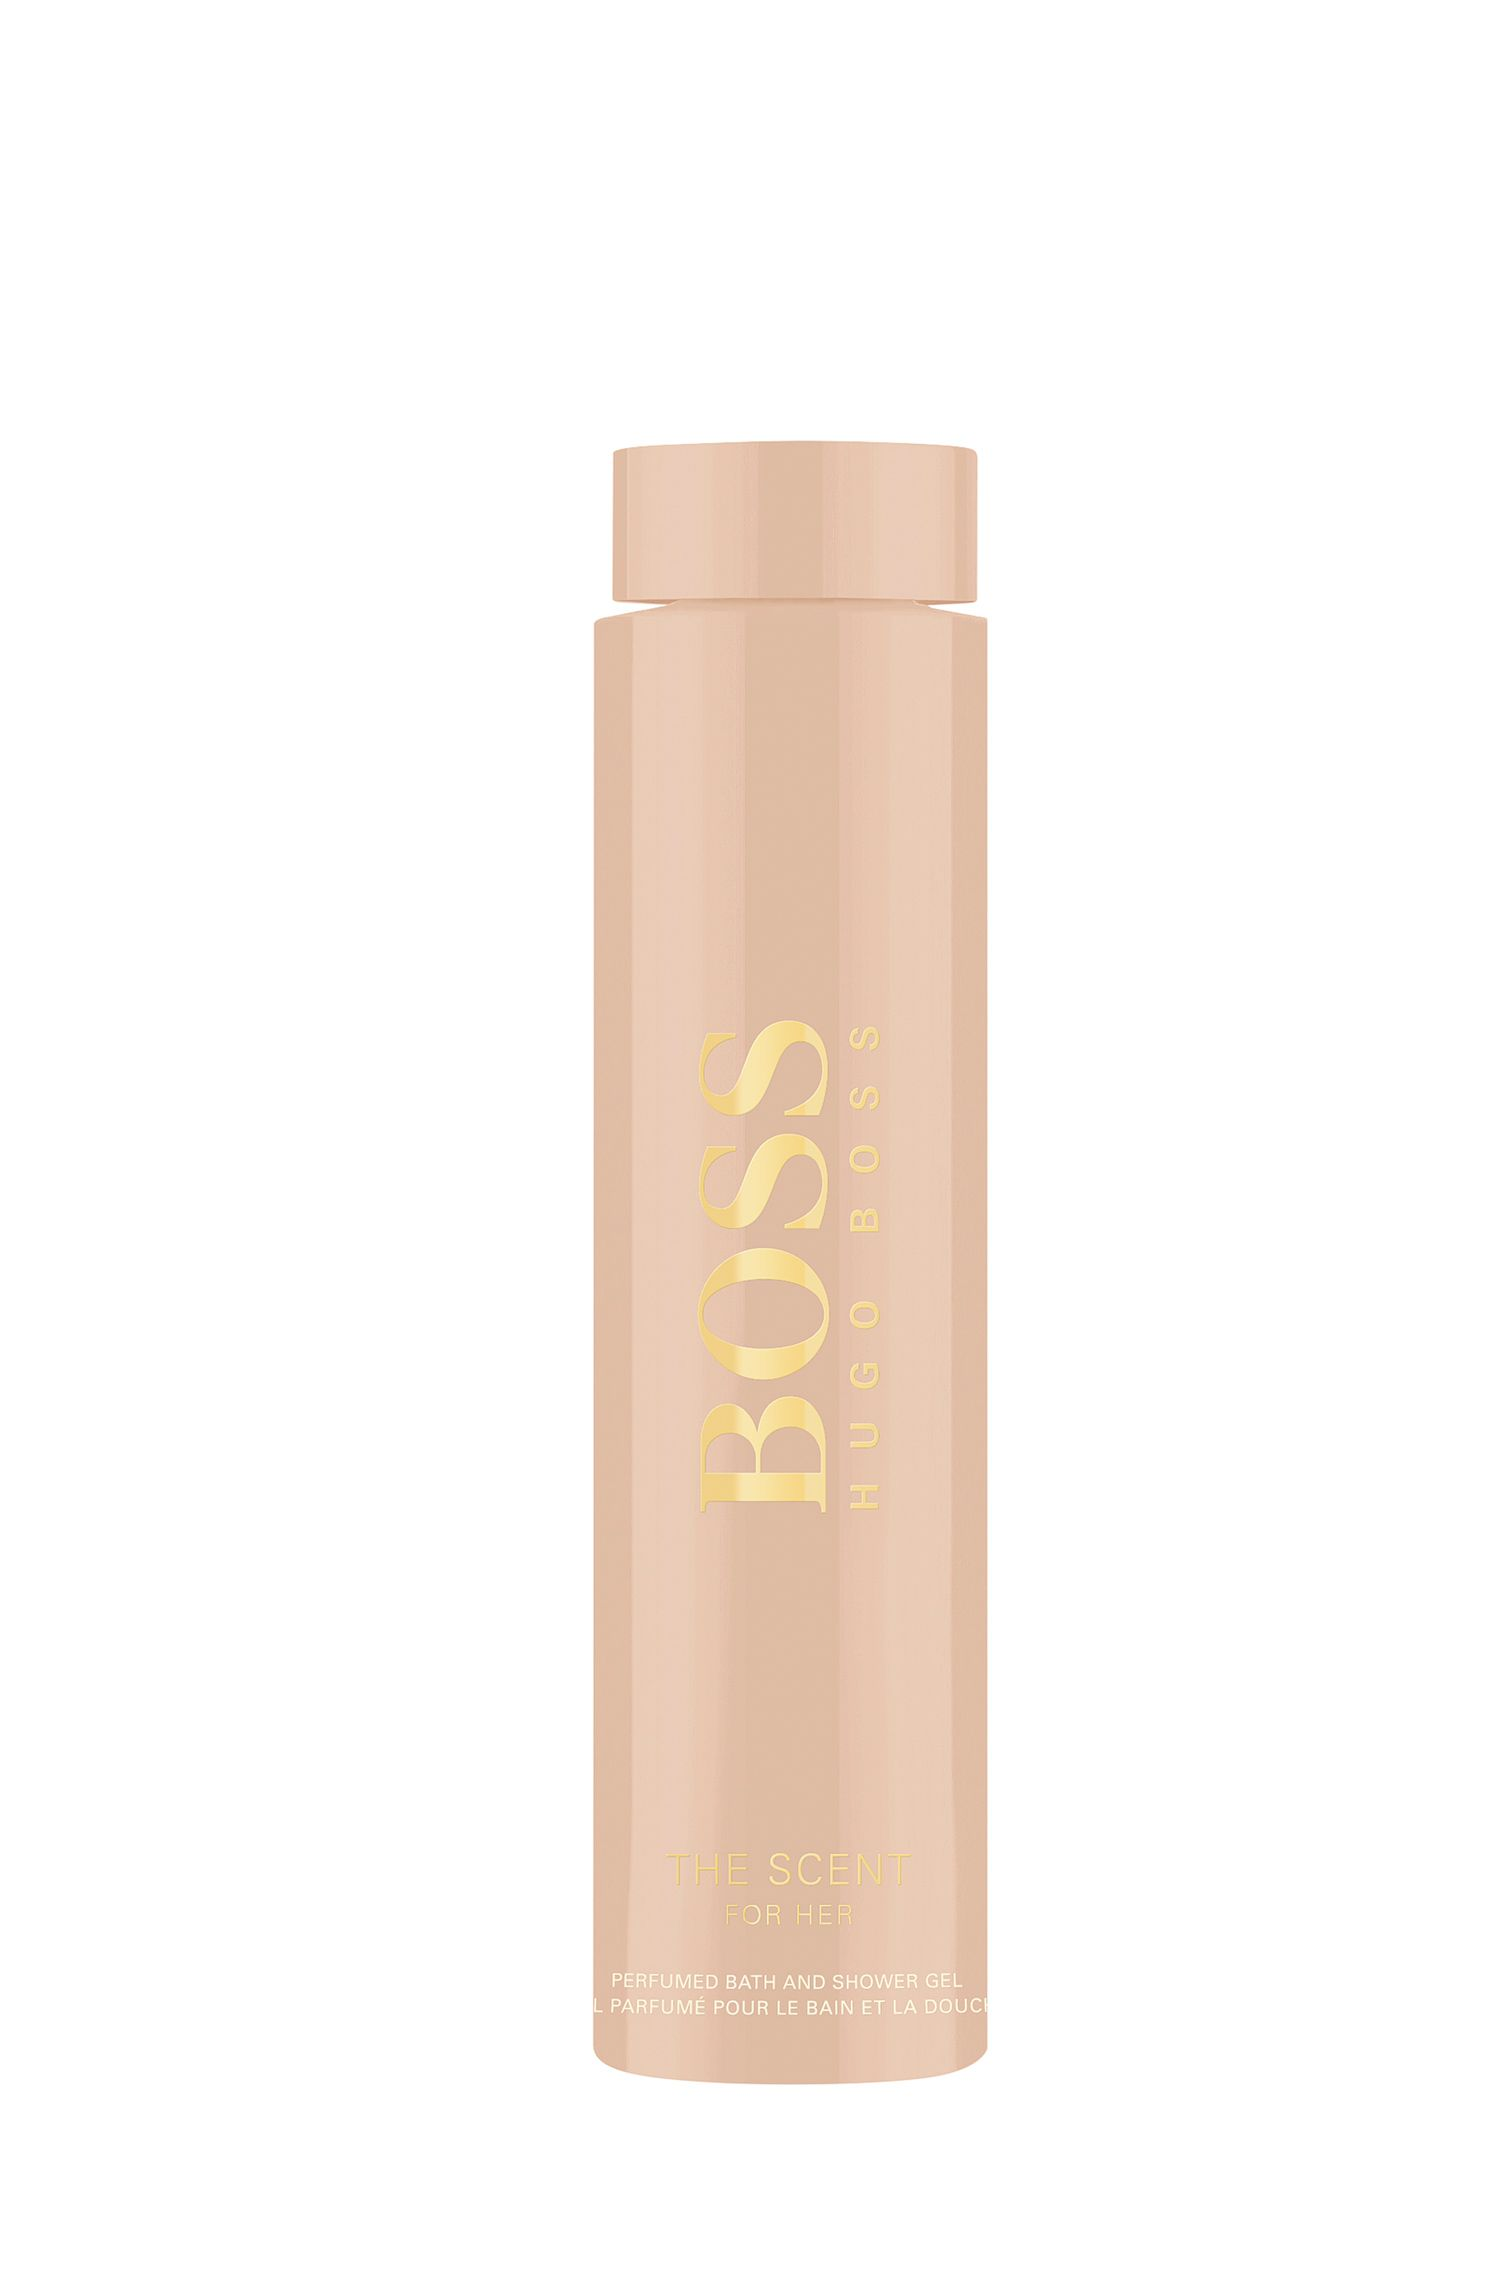 BOSS The Scent for Her Duschgel 200 ml